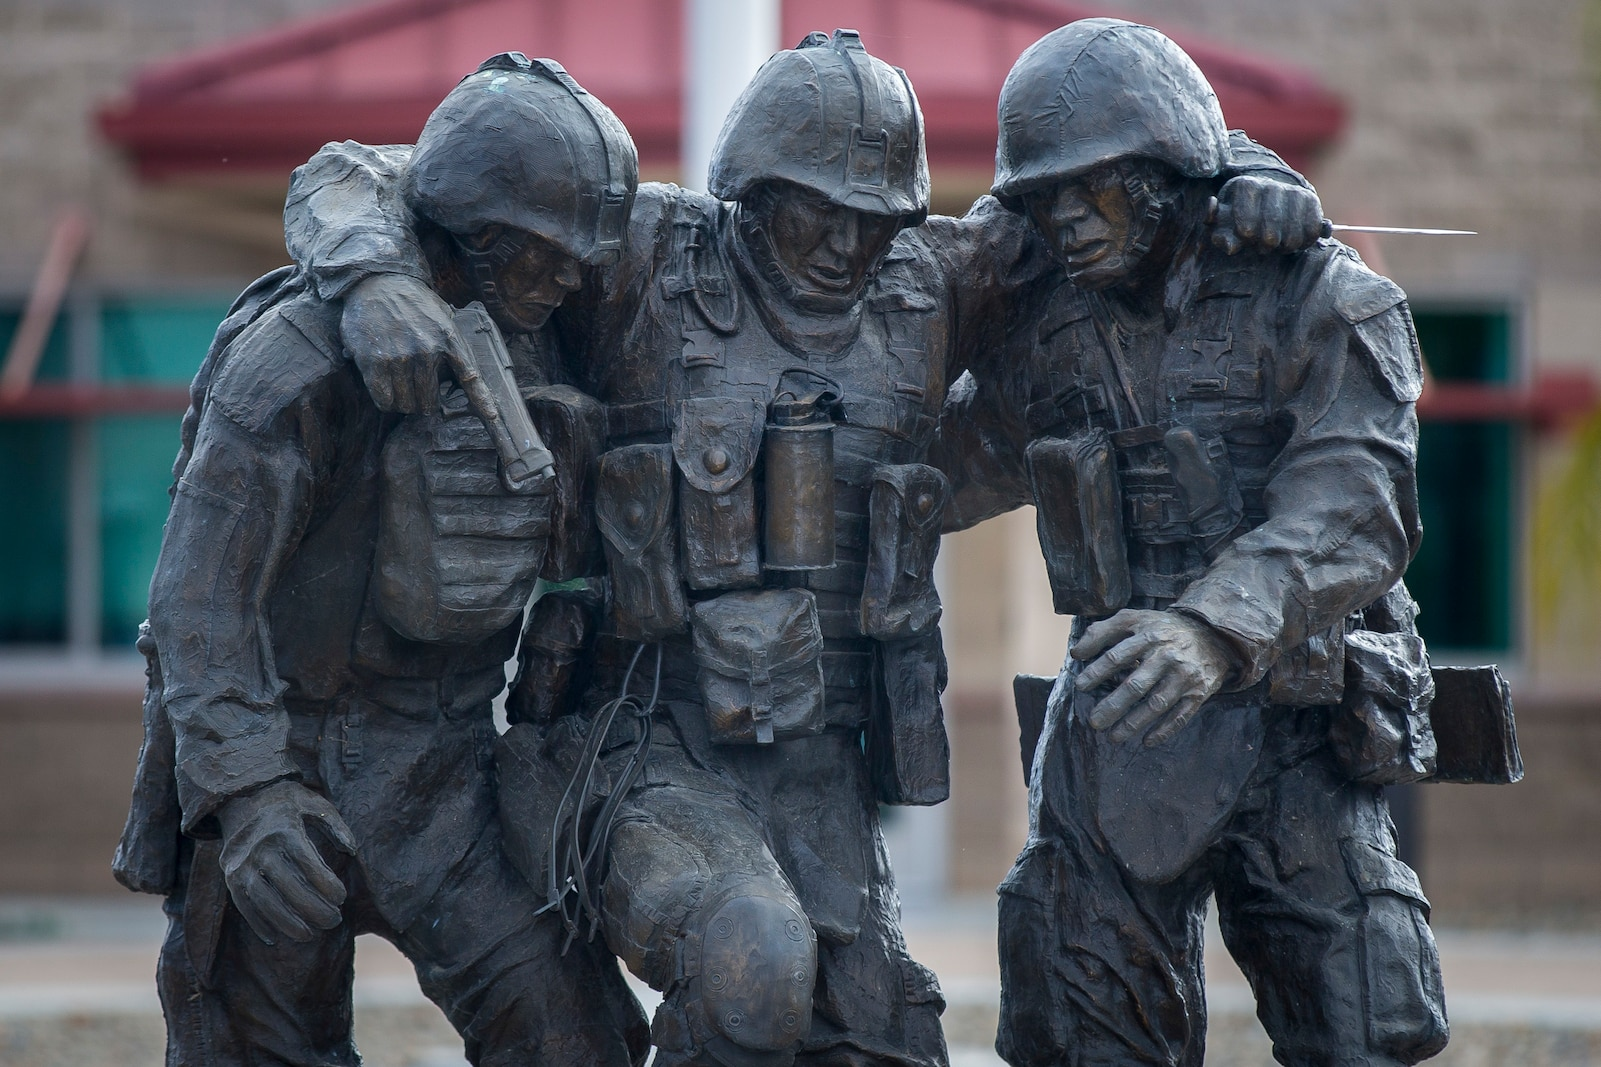 The commemorative statue of 1st Sgt. Bradley Kasal being carried by Lance Cpl. Chris Marquez and Lance Cpl. Dan Shaffer, after taking heavy fire, stands outside of the Wounded Warrior Battalion-West headquarters building on Marine Corps Base Camp Pendleton, Calif., June 1, 2018.  WWBn-W is committed to the successful recovery and transition of each Marine and family assigned to its care, and focuses on the mind, body and spirit of every individual when addressing recovery needs. (U.S. Marine Corps Cpl. Juan C. Bustos)